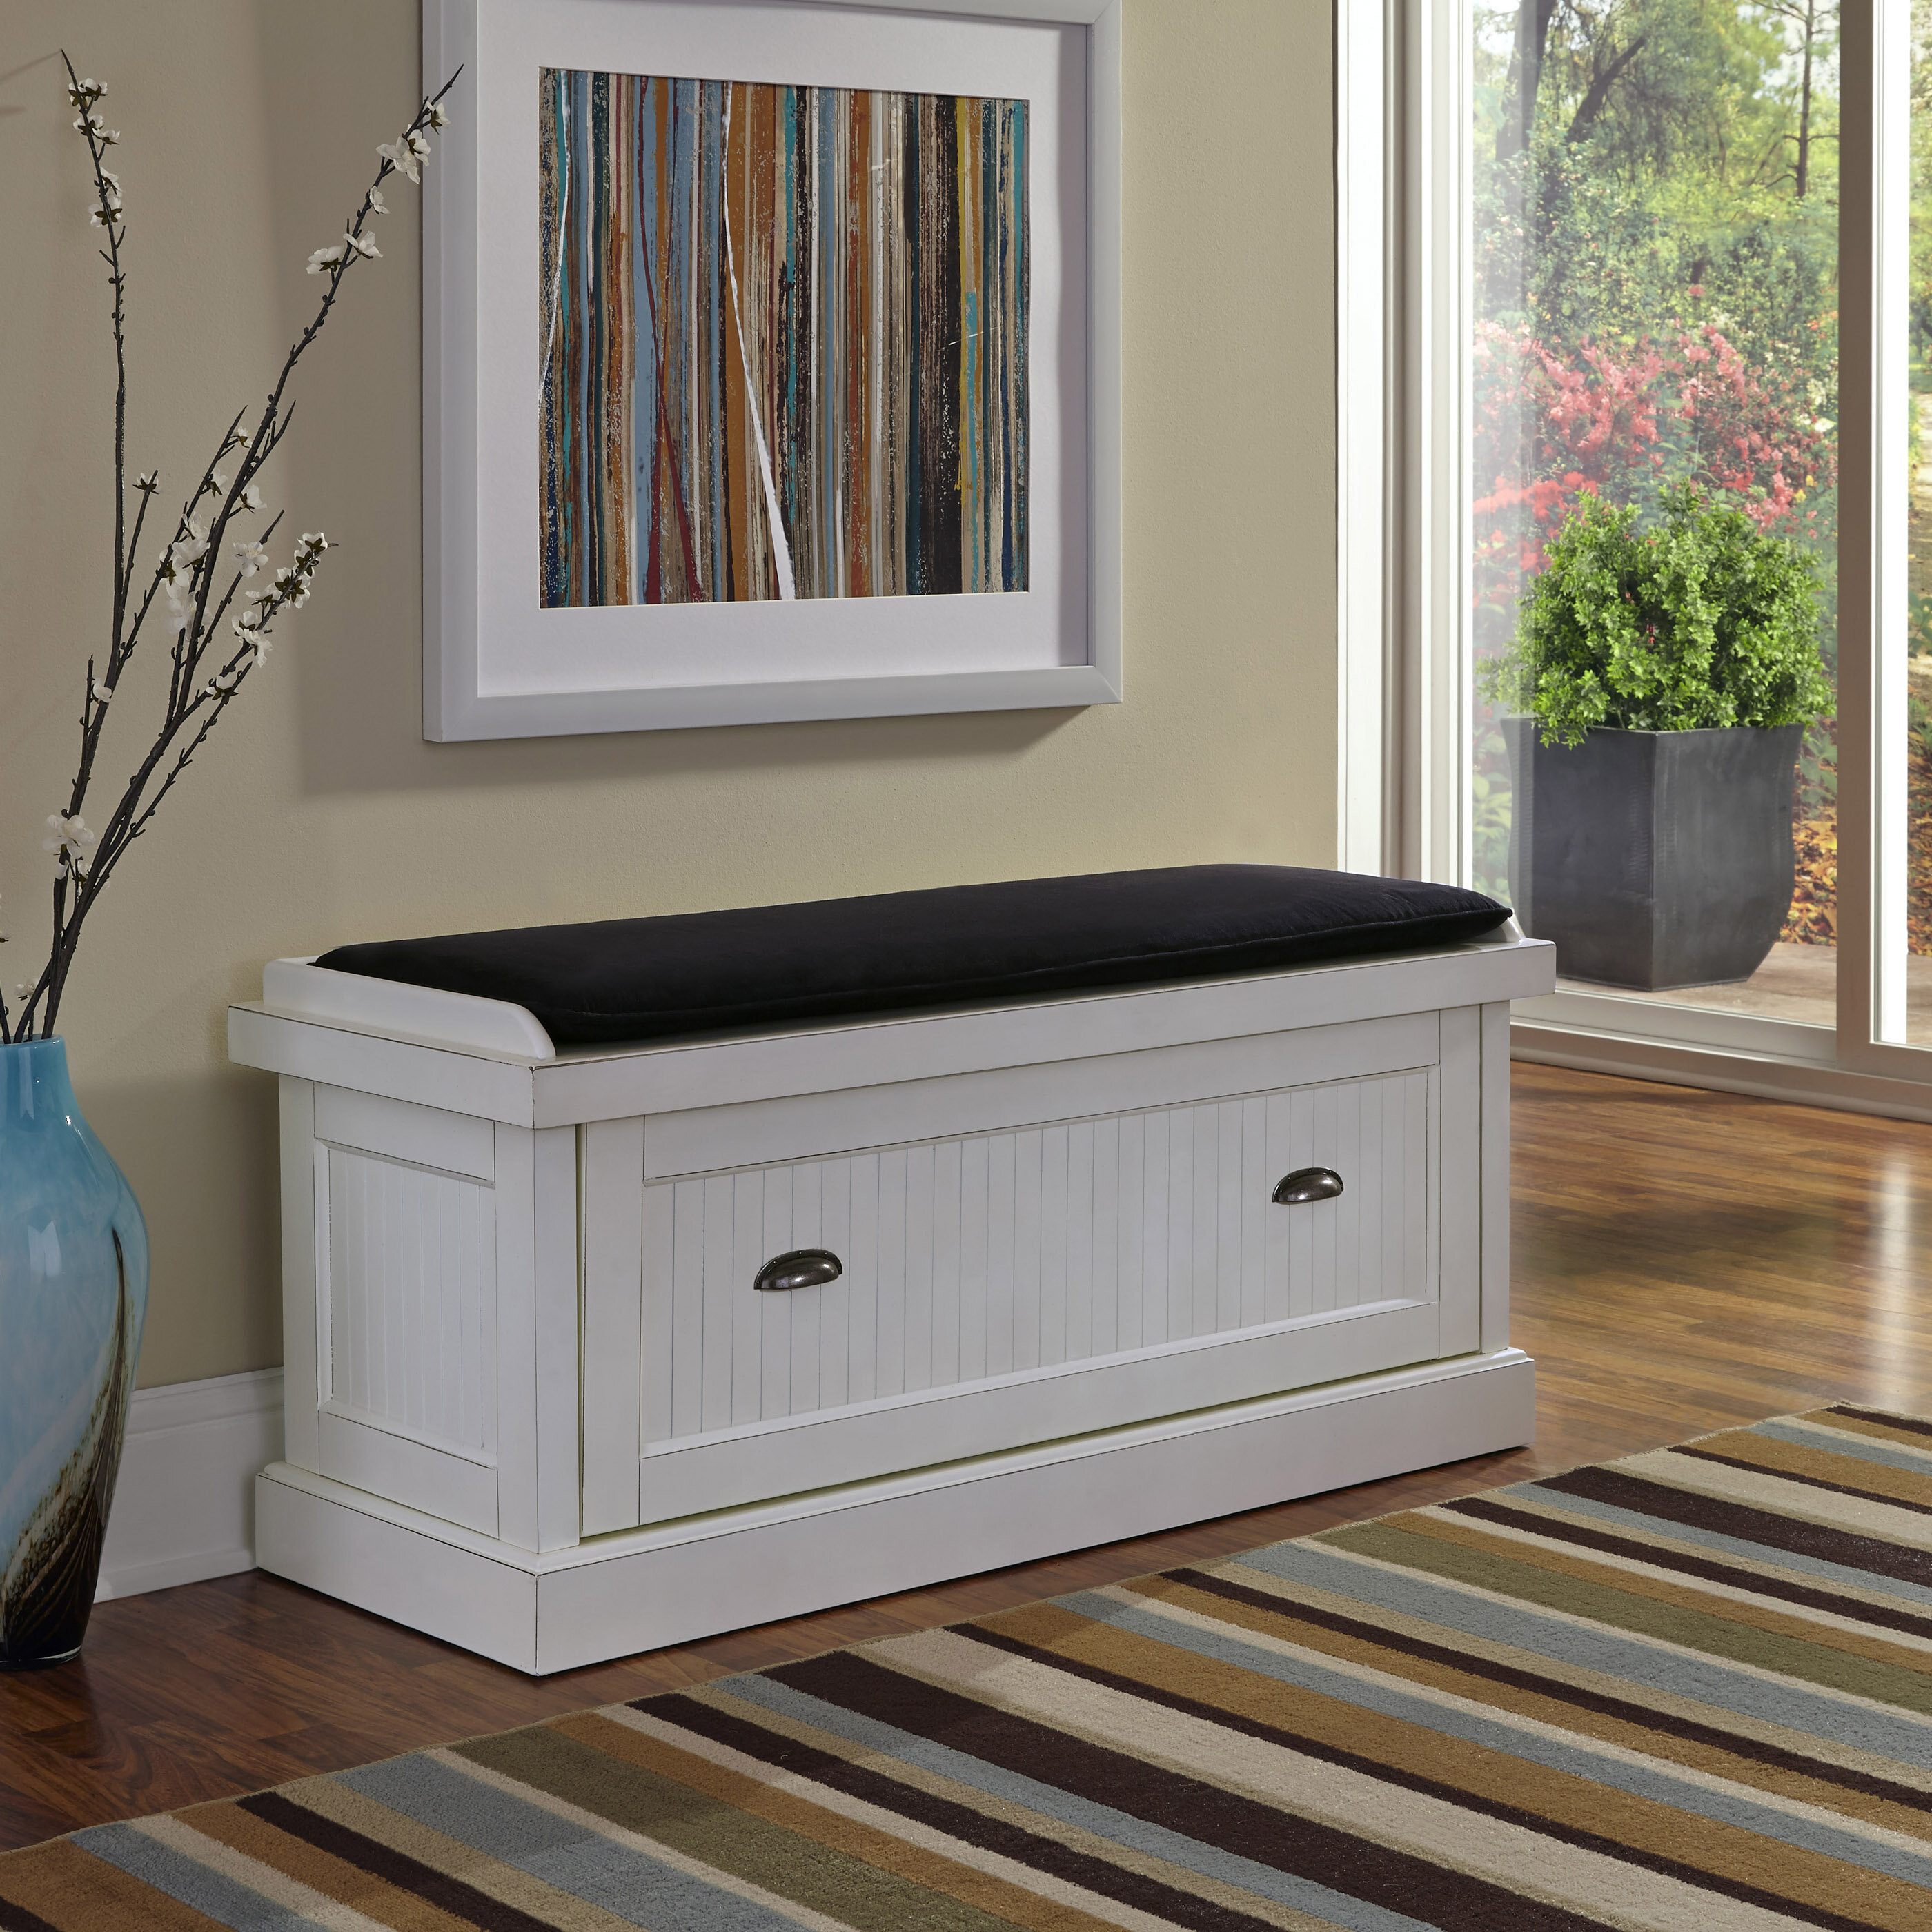 pin an cozy to modern entry style bench add pillows wood mirror entryway a throws elements midcentury with warmth round and oversize of